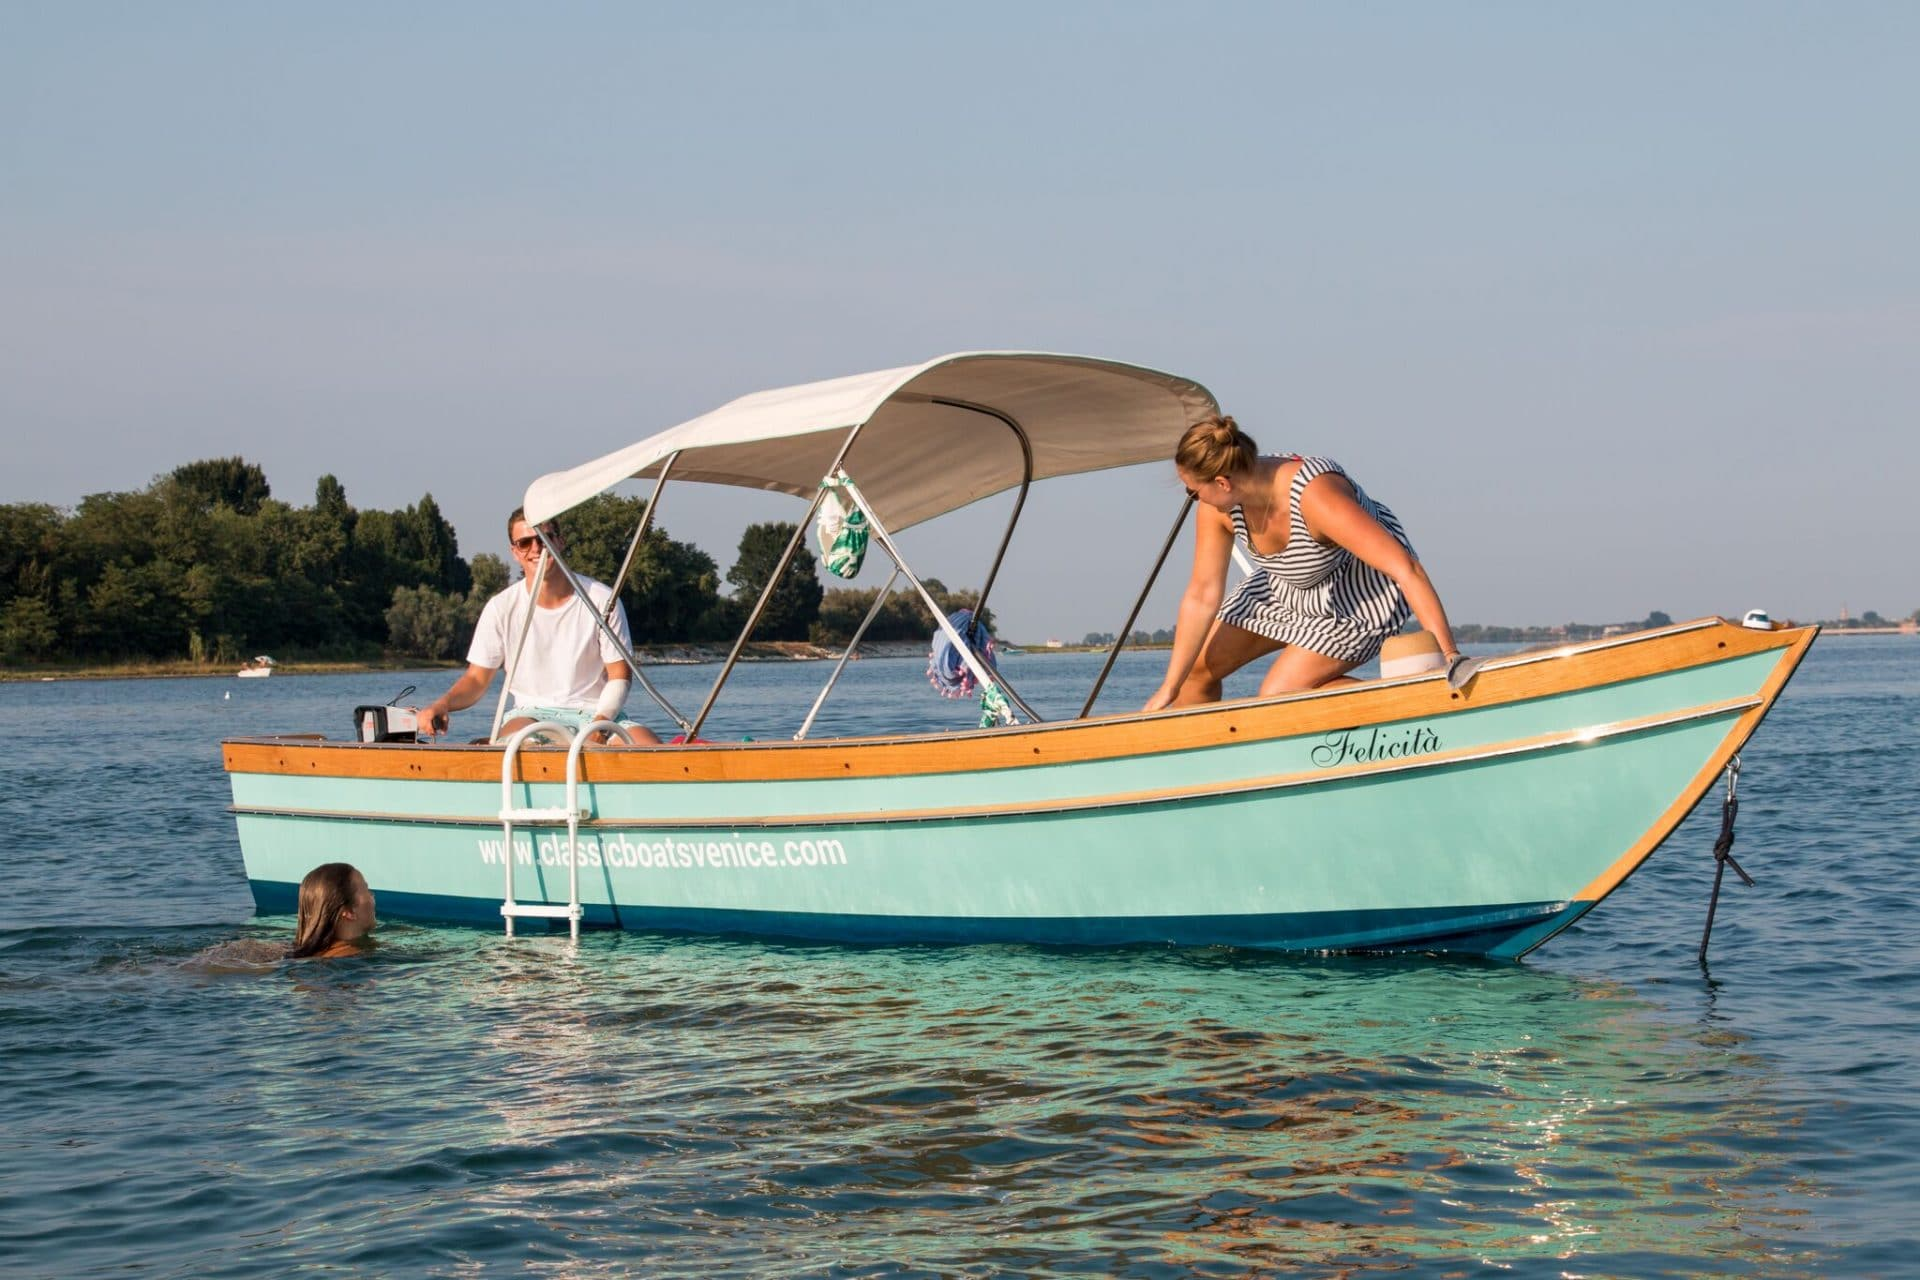 Classic Boats Venice Boat Rentals In Venice Italy Lagoon Tours